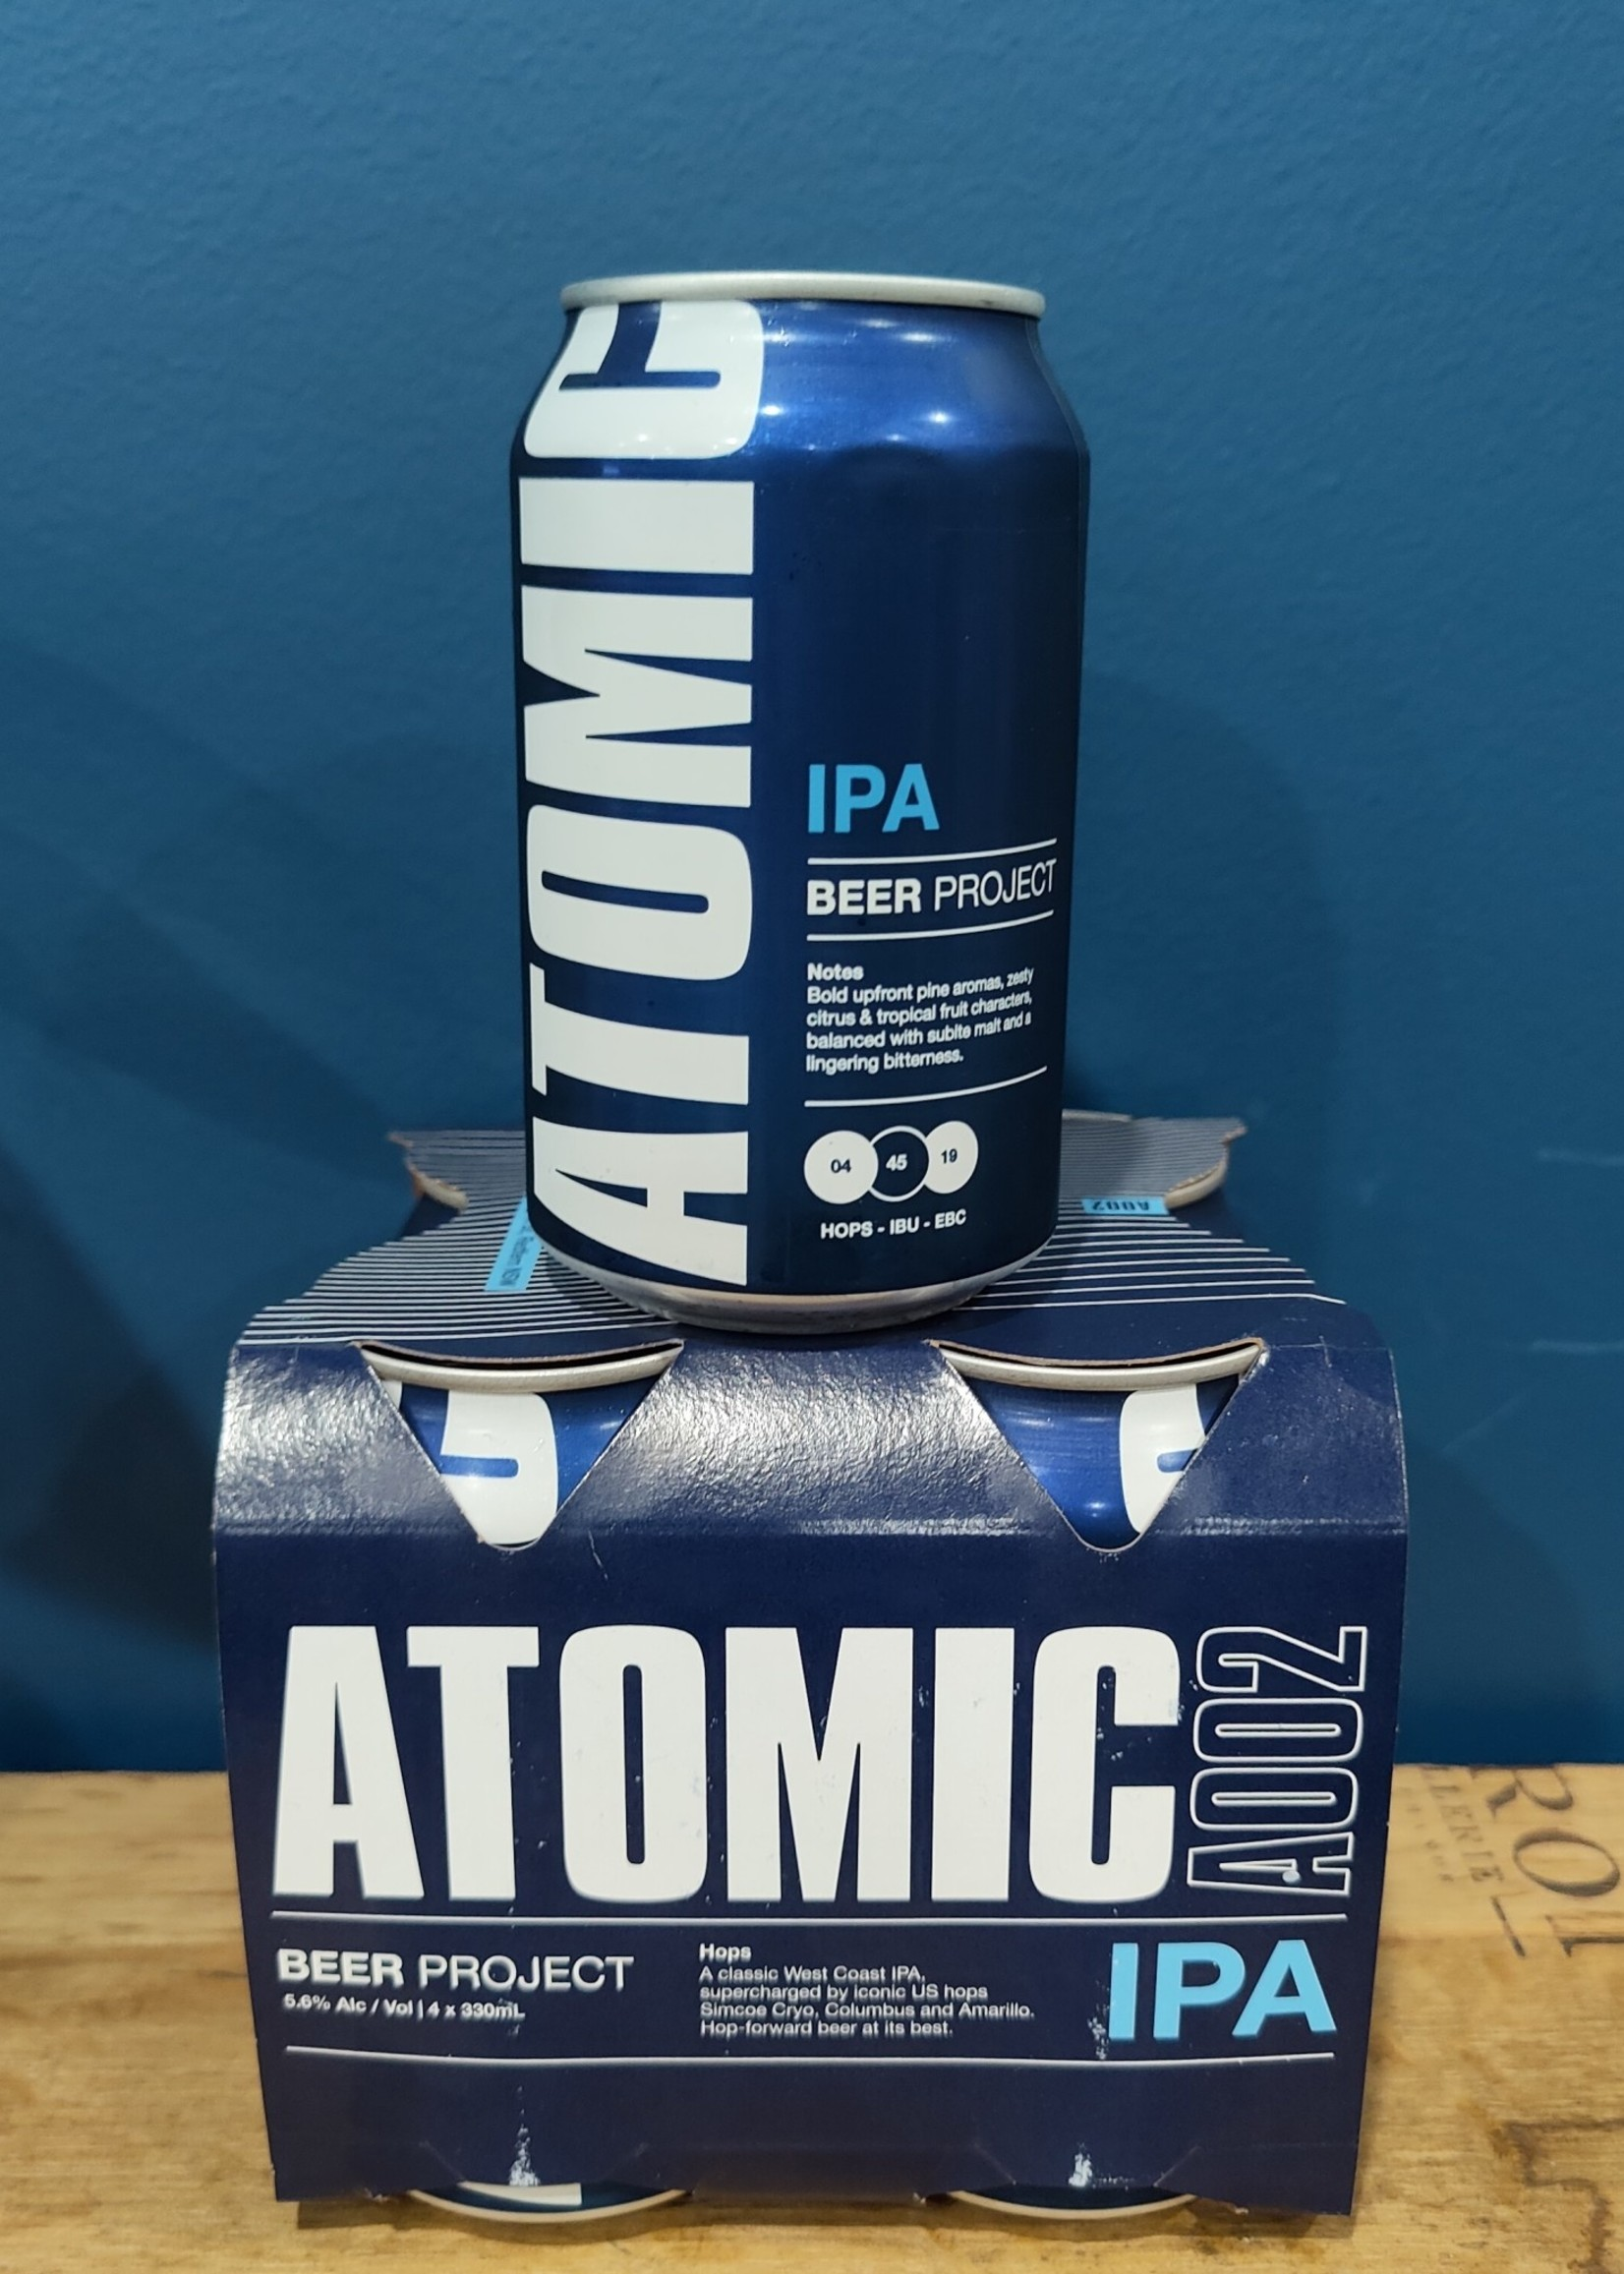 ATOMIC BEER PROJECT Atomic IPA